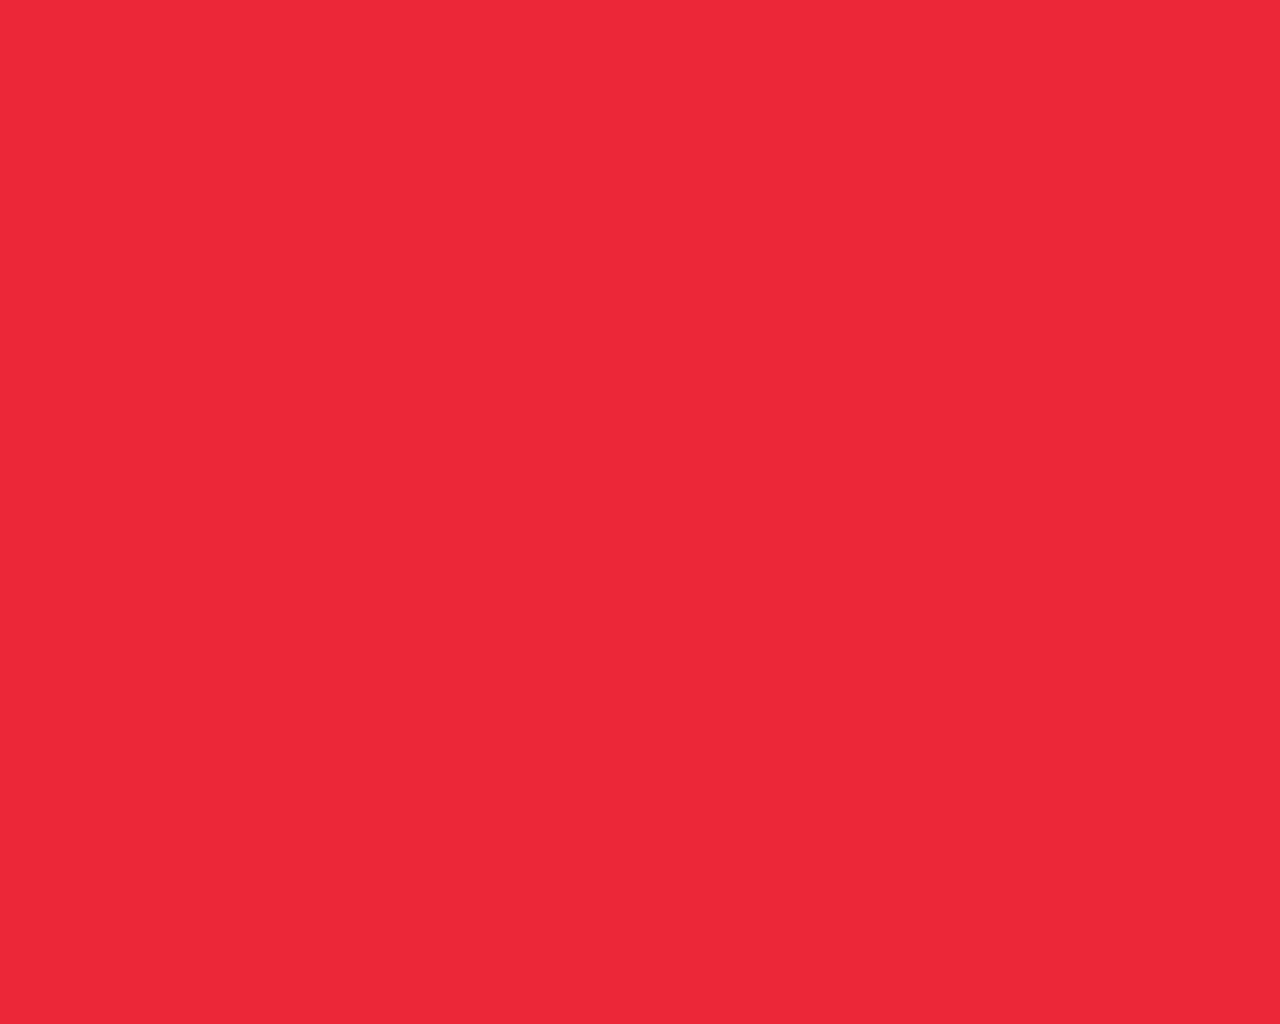 1280x1024 Red Pantone Solid Color Background